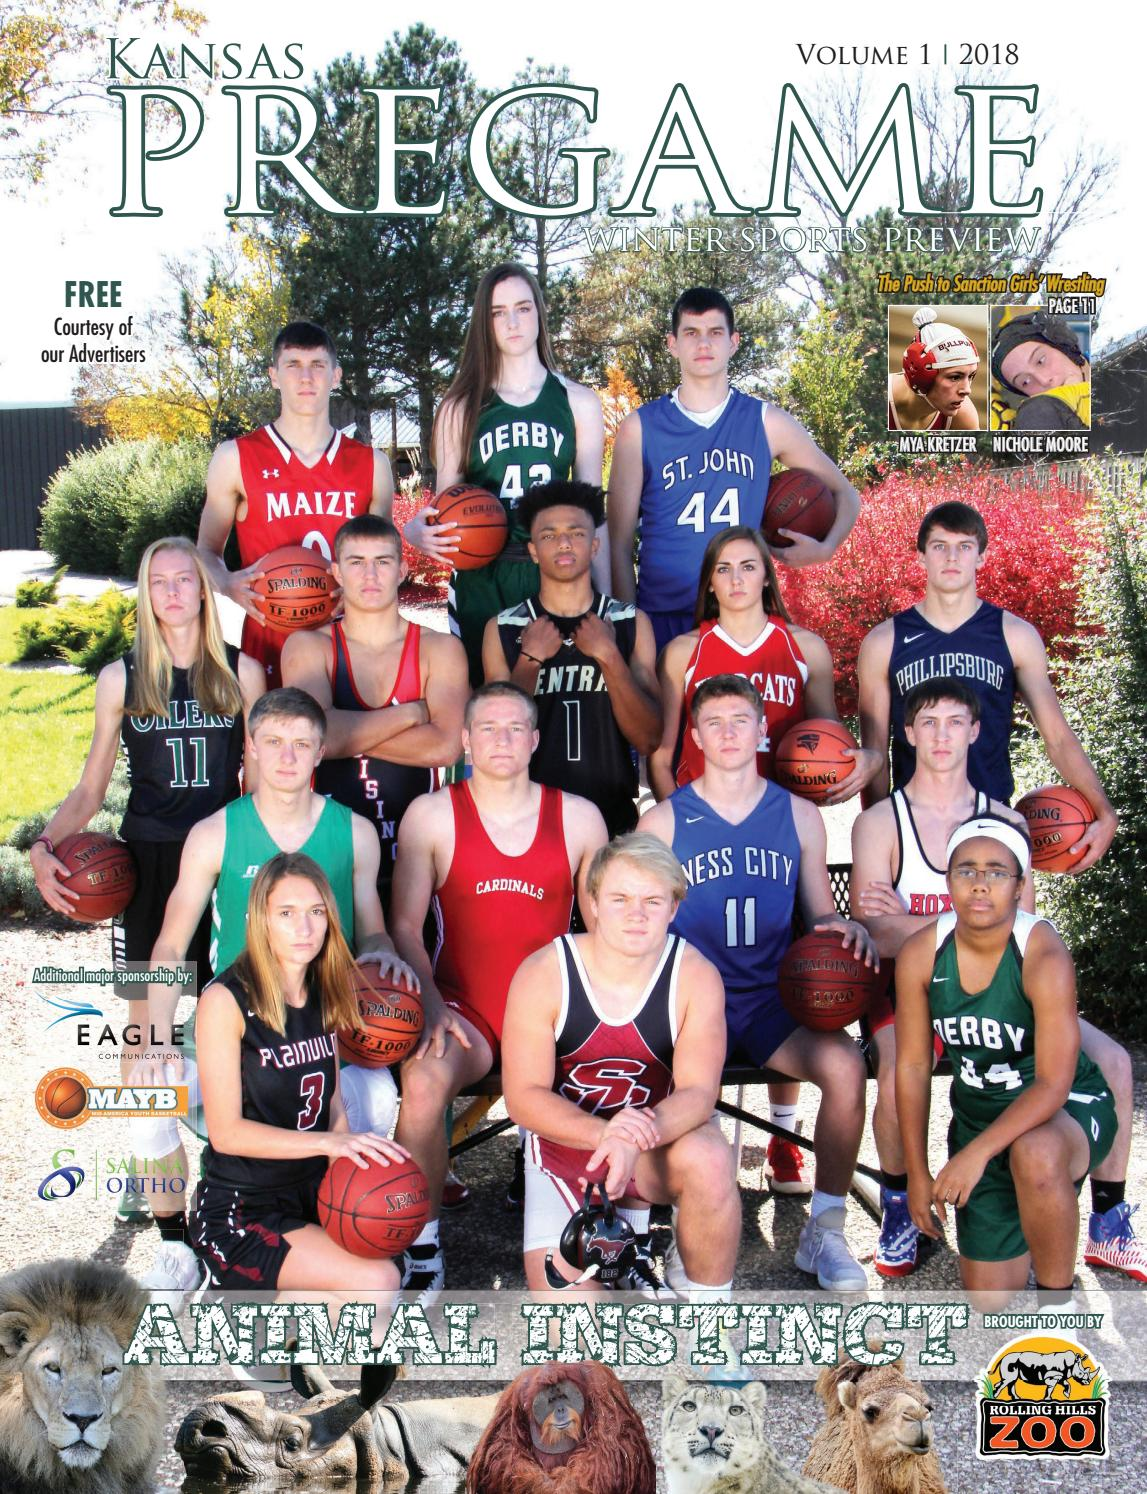 6983f6f67cd5 Kansas Pregame Winter Sports Preview 2018 by Sixteen 60 Publishing Co. -  issuu